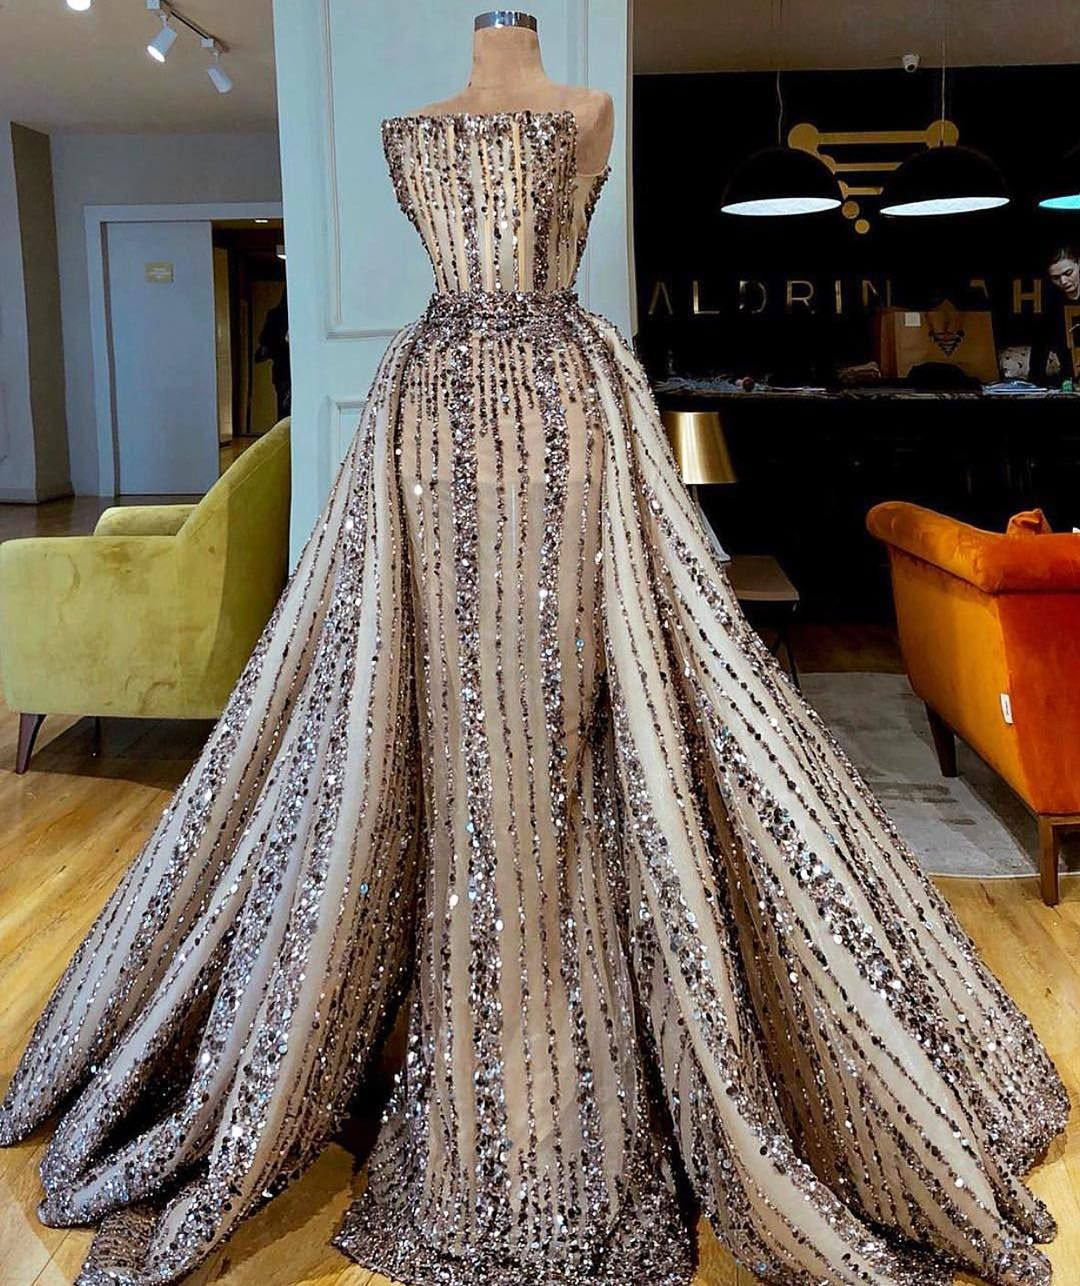 New The 10 All Time Best Home Decor In The World Mine Mine Mine Omg There Are No Words To Explain How Incredible Couture Evening Dress Gowns Ball Dresses